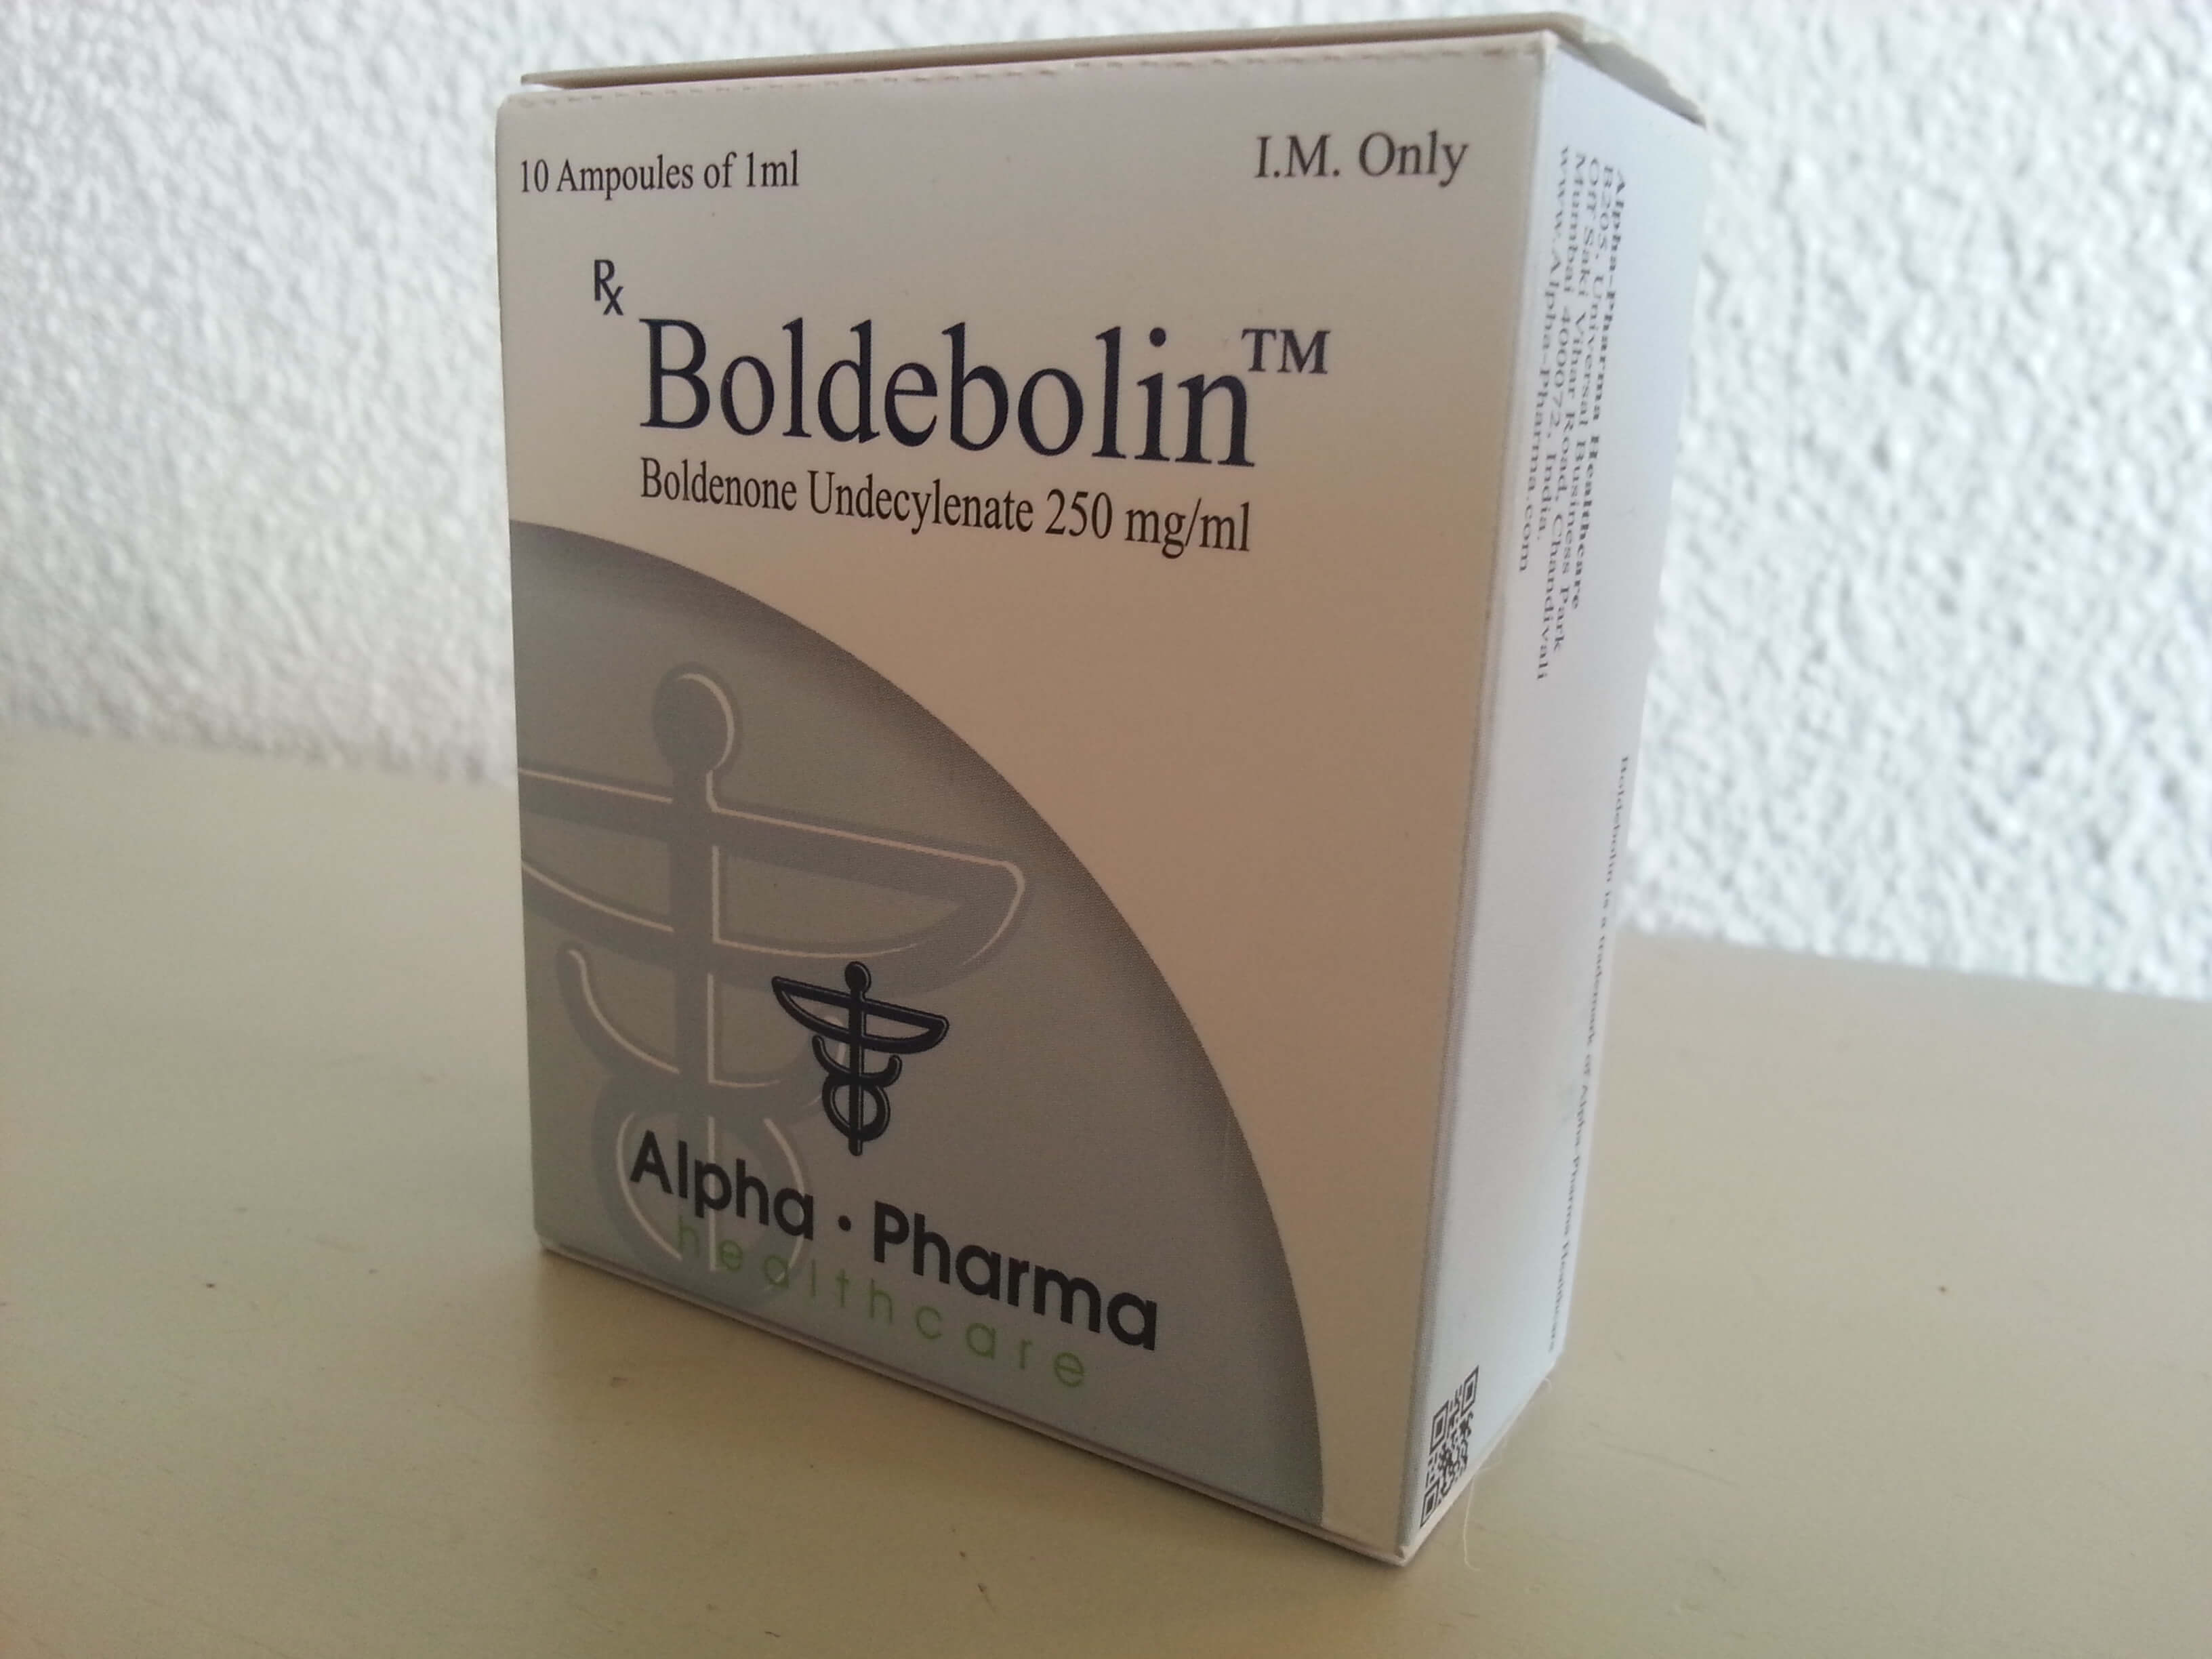 boldebolin undecylenate 250